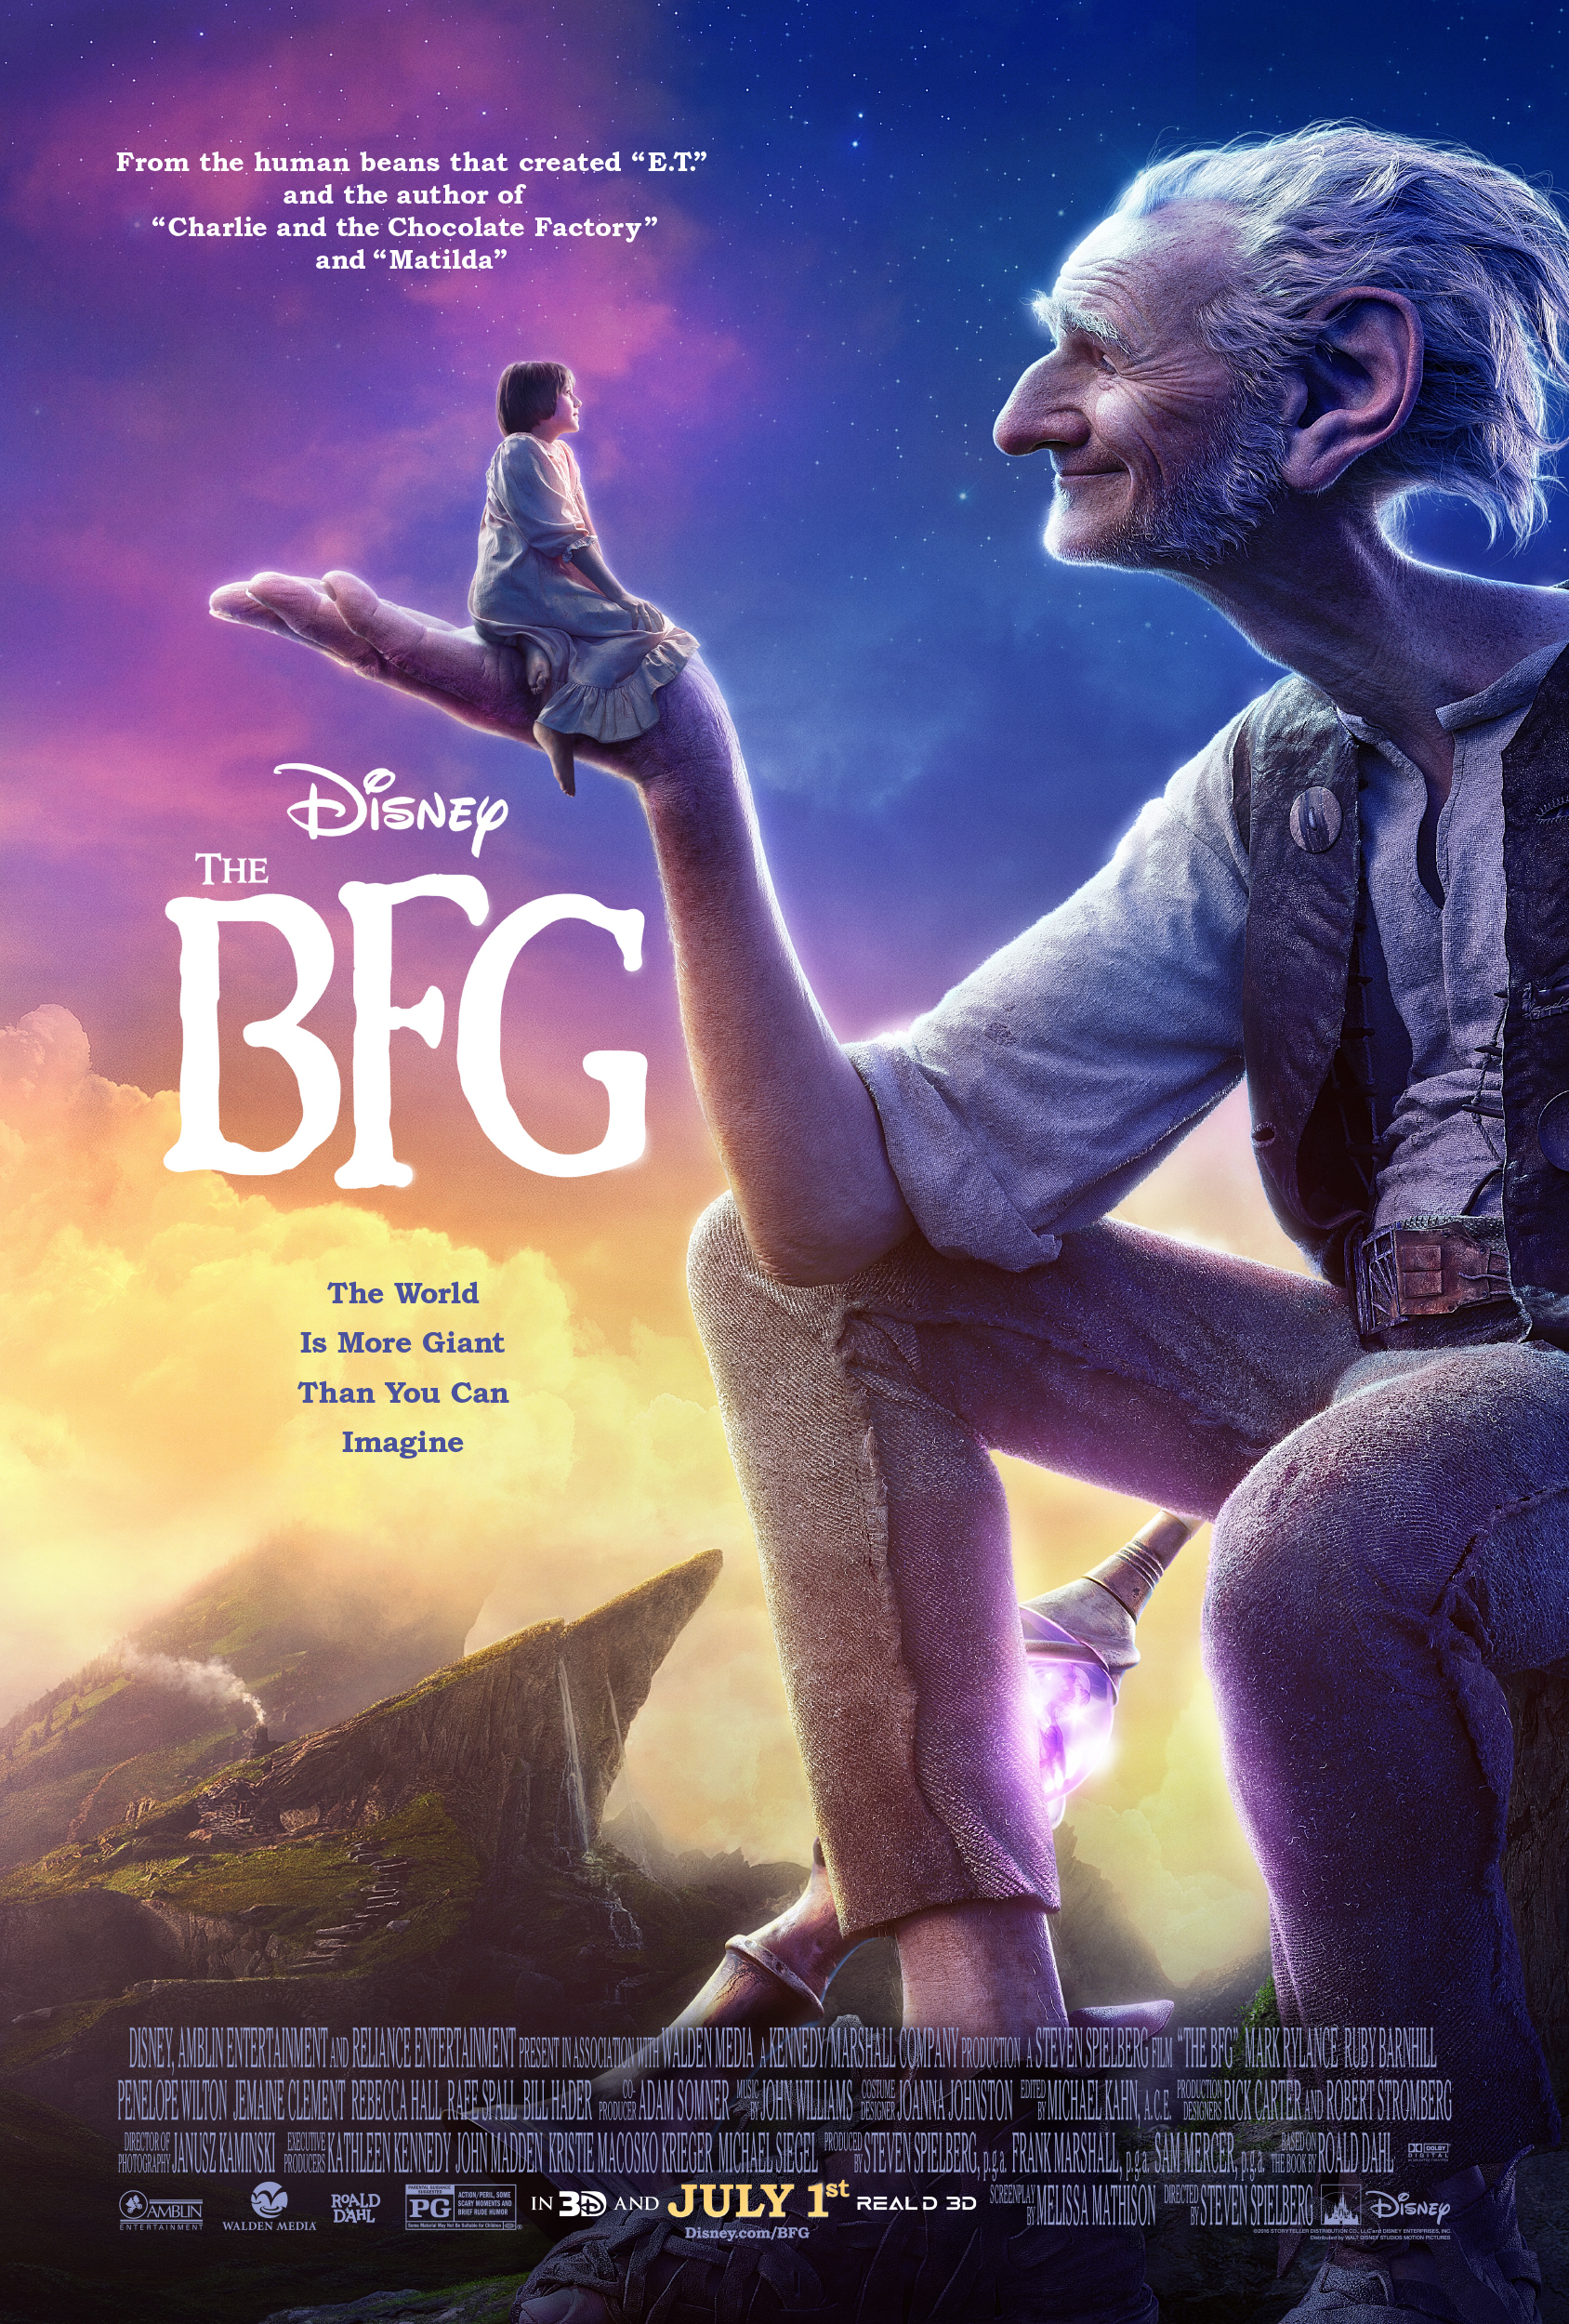 New Poster and Trailer For The BFG #TheBFG